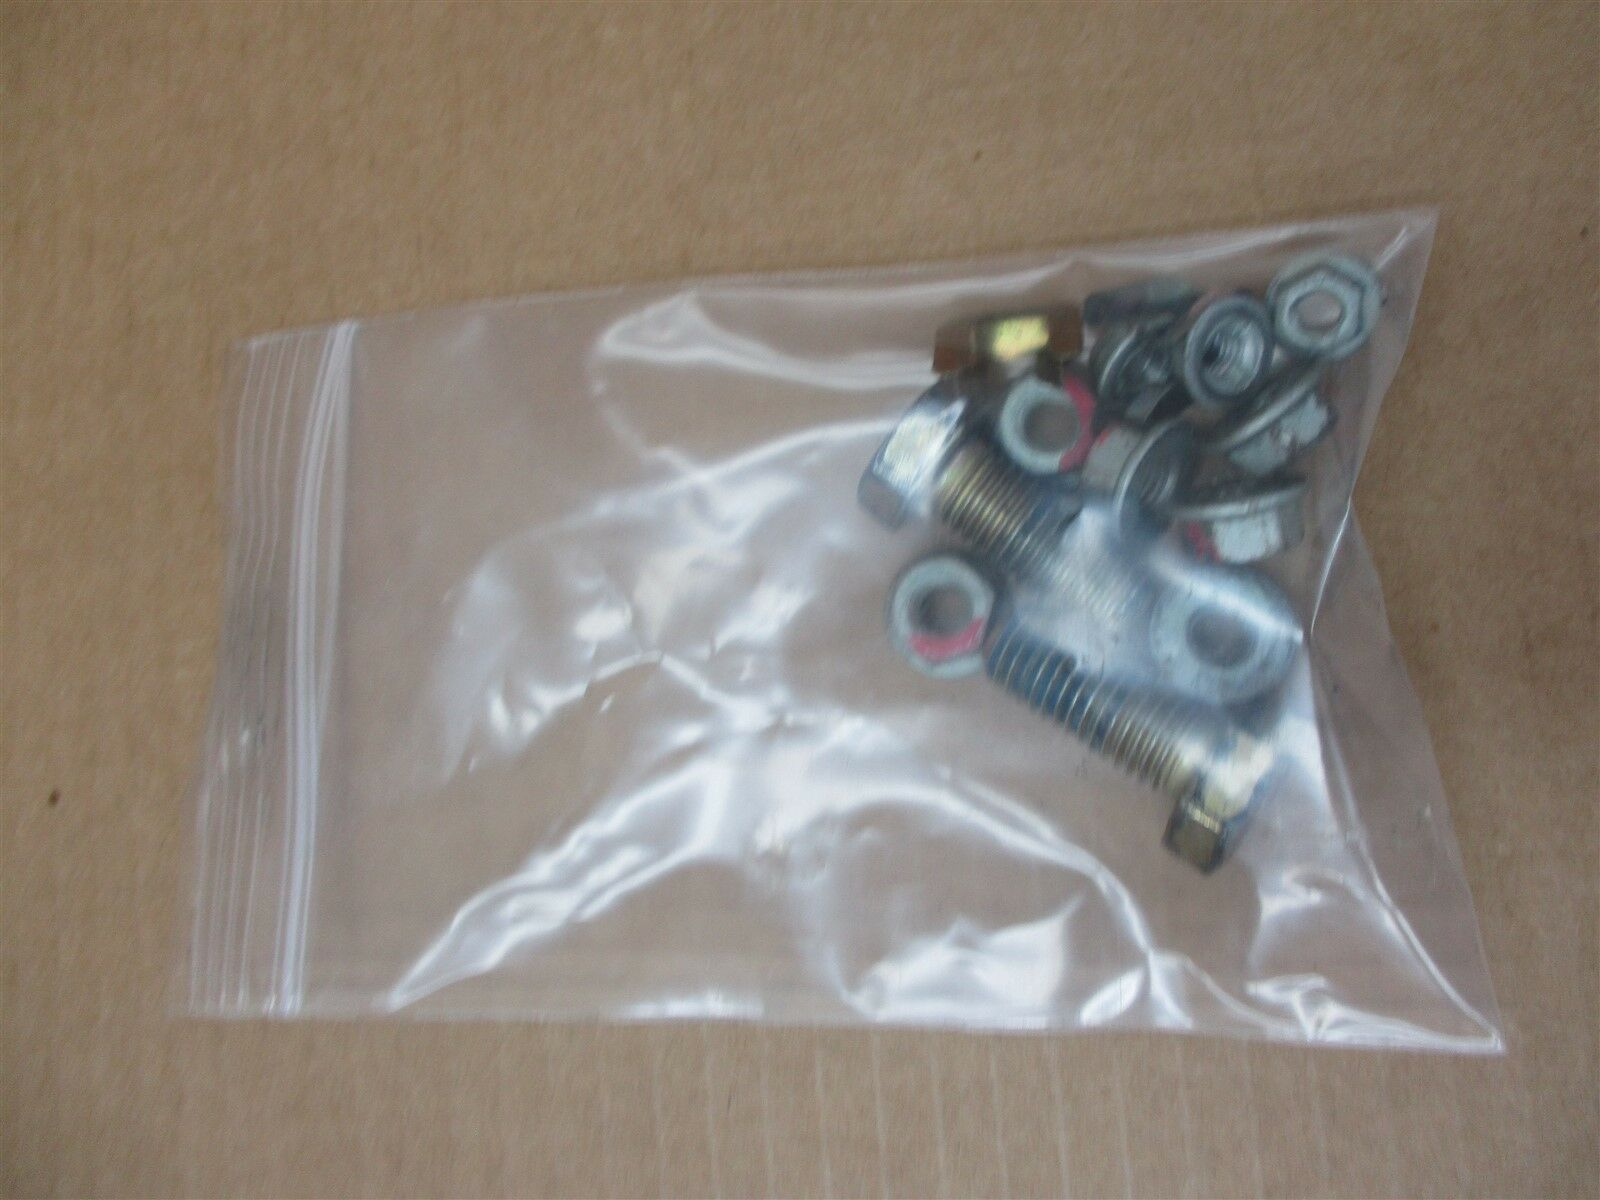 01 Boxster RWD Porsche 986 TOP TRANSMISSIONS HINGES MOTOR 98662411700 112,512